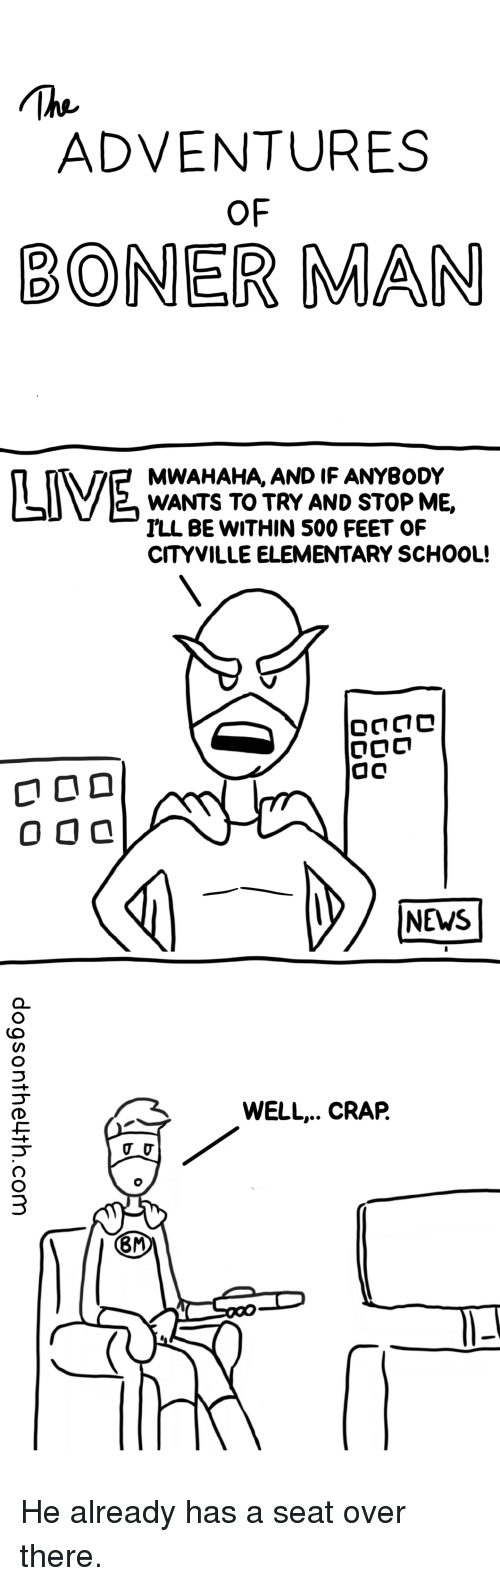 Boner, News, and School: ADVENTURES  OF  BONER MAN  MWAHAHA, AND IF ANYBODY  WANTS TO TRY AND STOP ME,  ILL BE WITHIN 500 FEET OF  CITYVILLE ELEMENTARY SCHOOL!  NEWS  WELL.. CRAP.  8M He already has a seat over there.